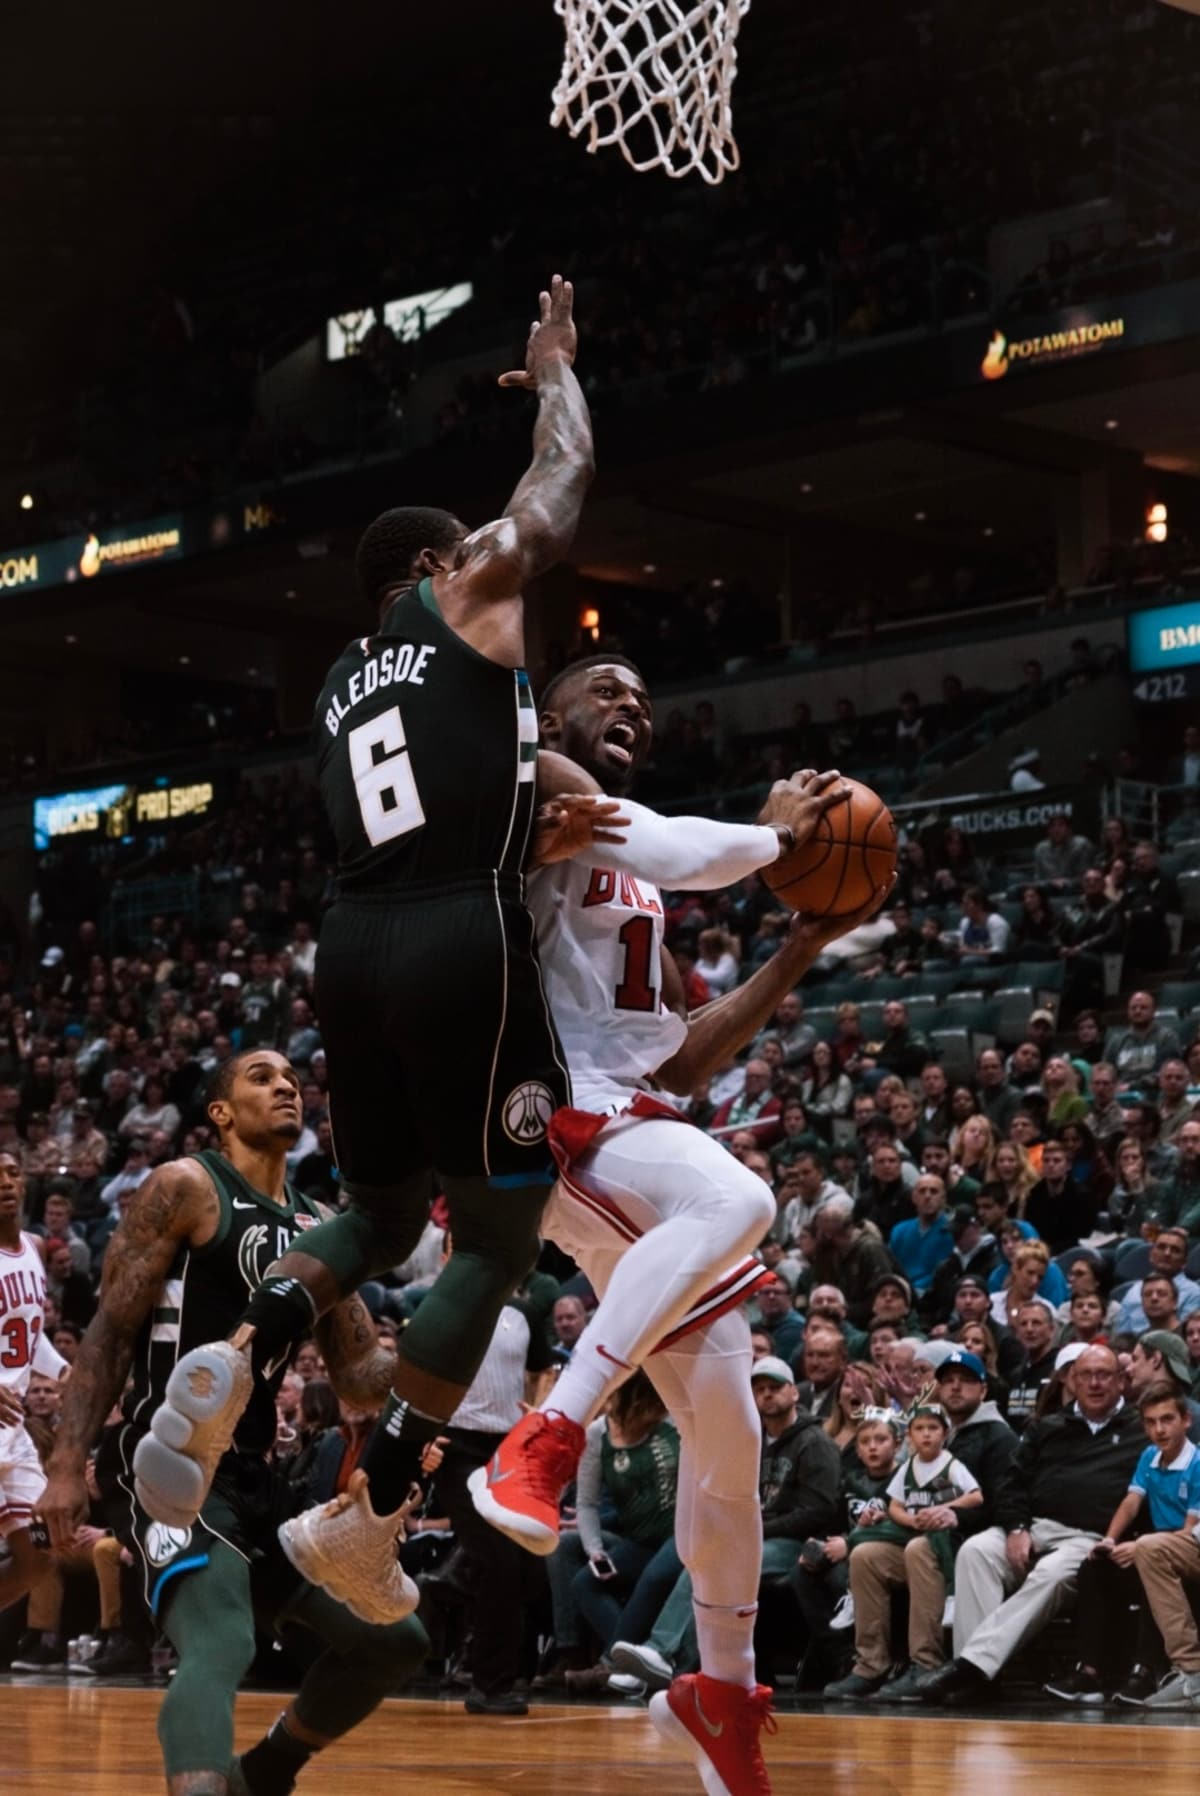 David Nwaba with the layup attempt at the BMO Harris Bradley Center on December 15th, 2017.